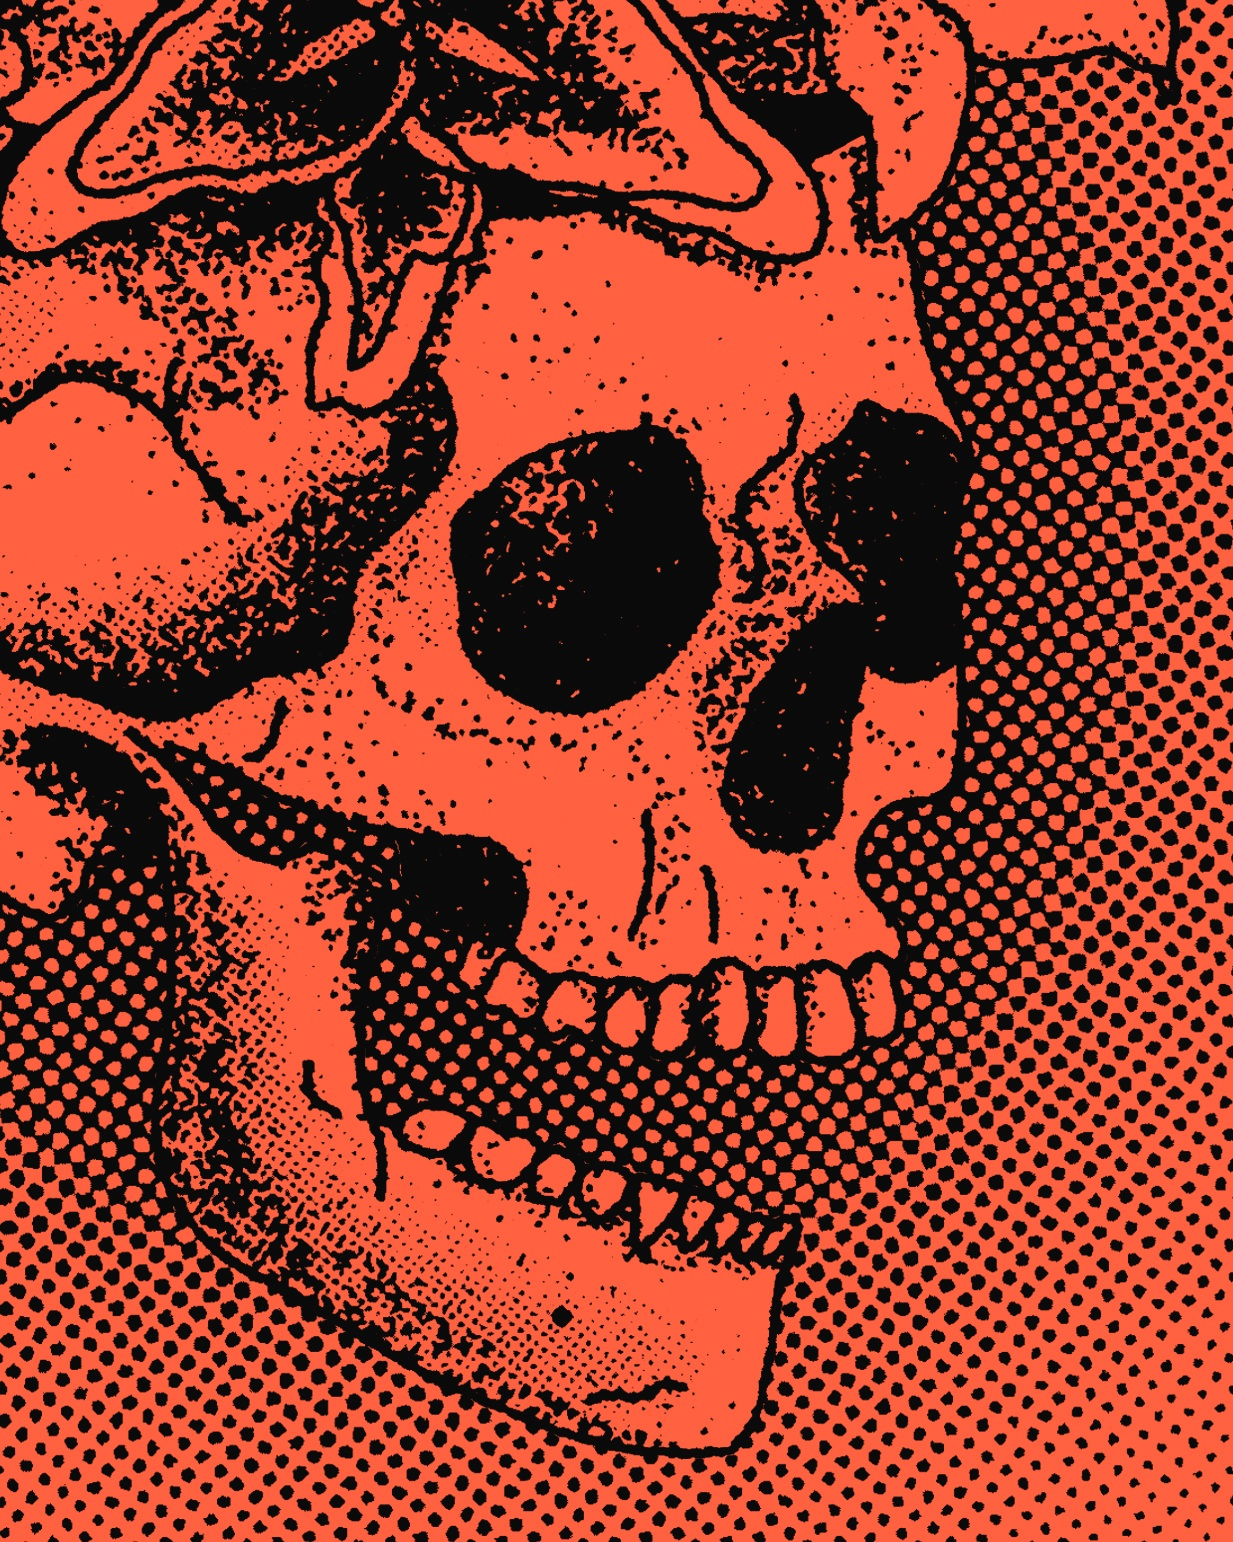 Tcecil_Poster_skull_red_detail2.jpg